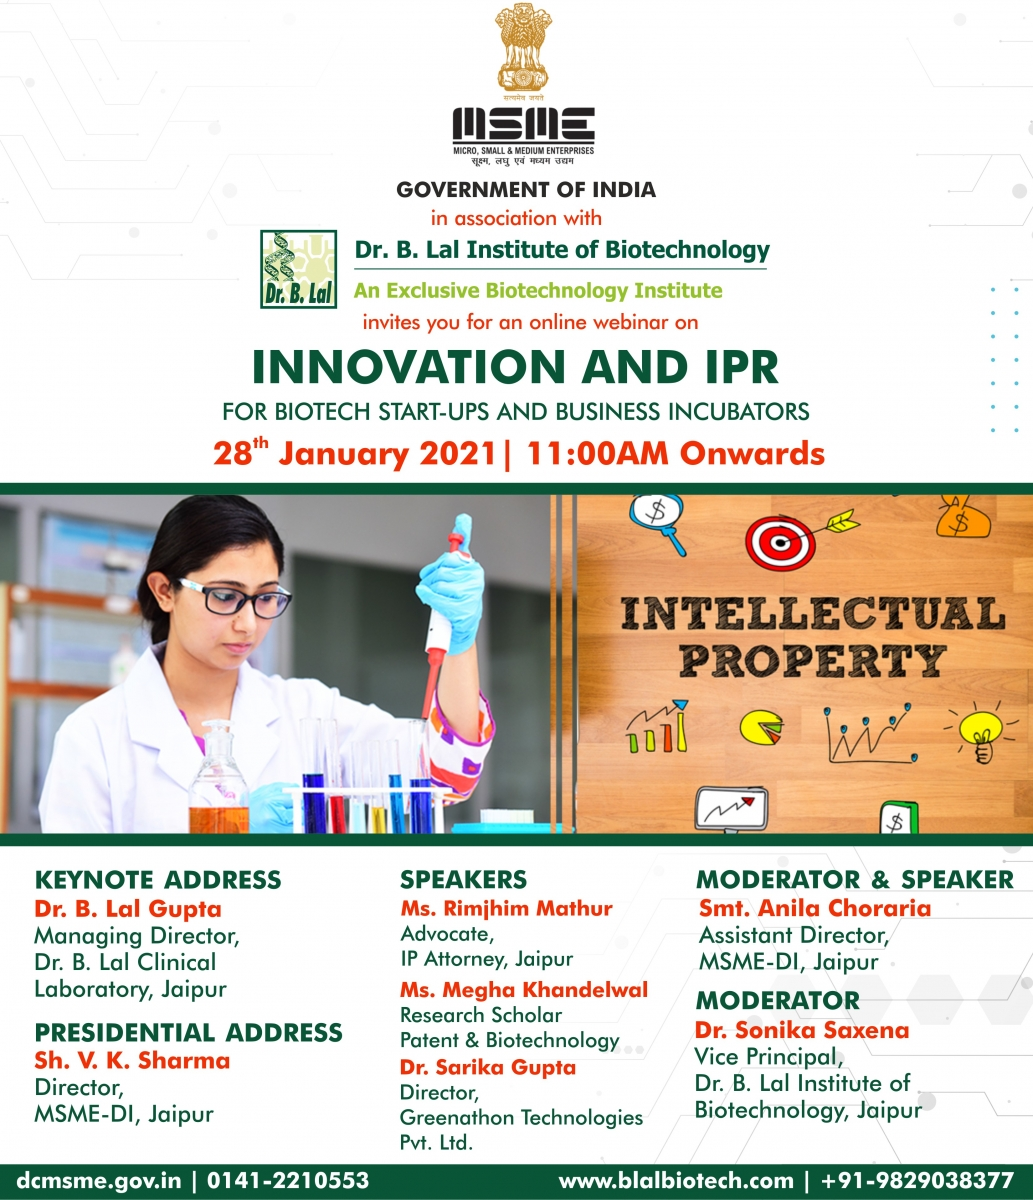 Online Webinar | Innovation and IPR for Biotech Start-ups and Business Incubators